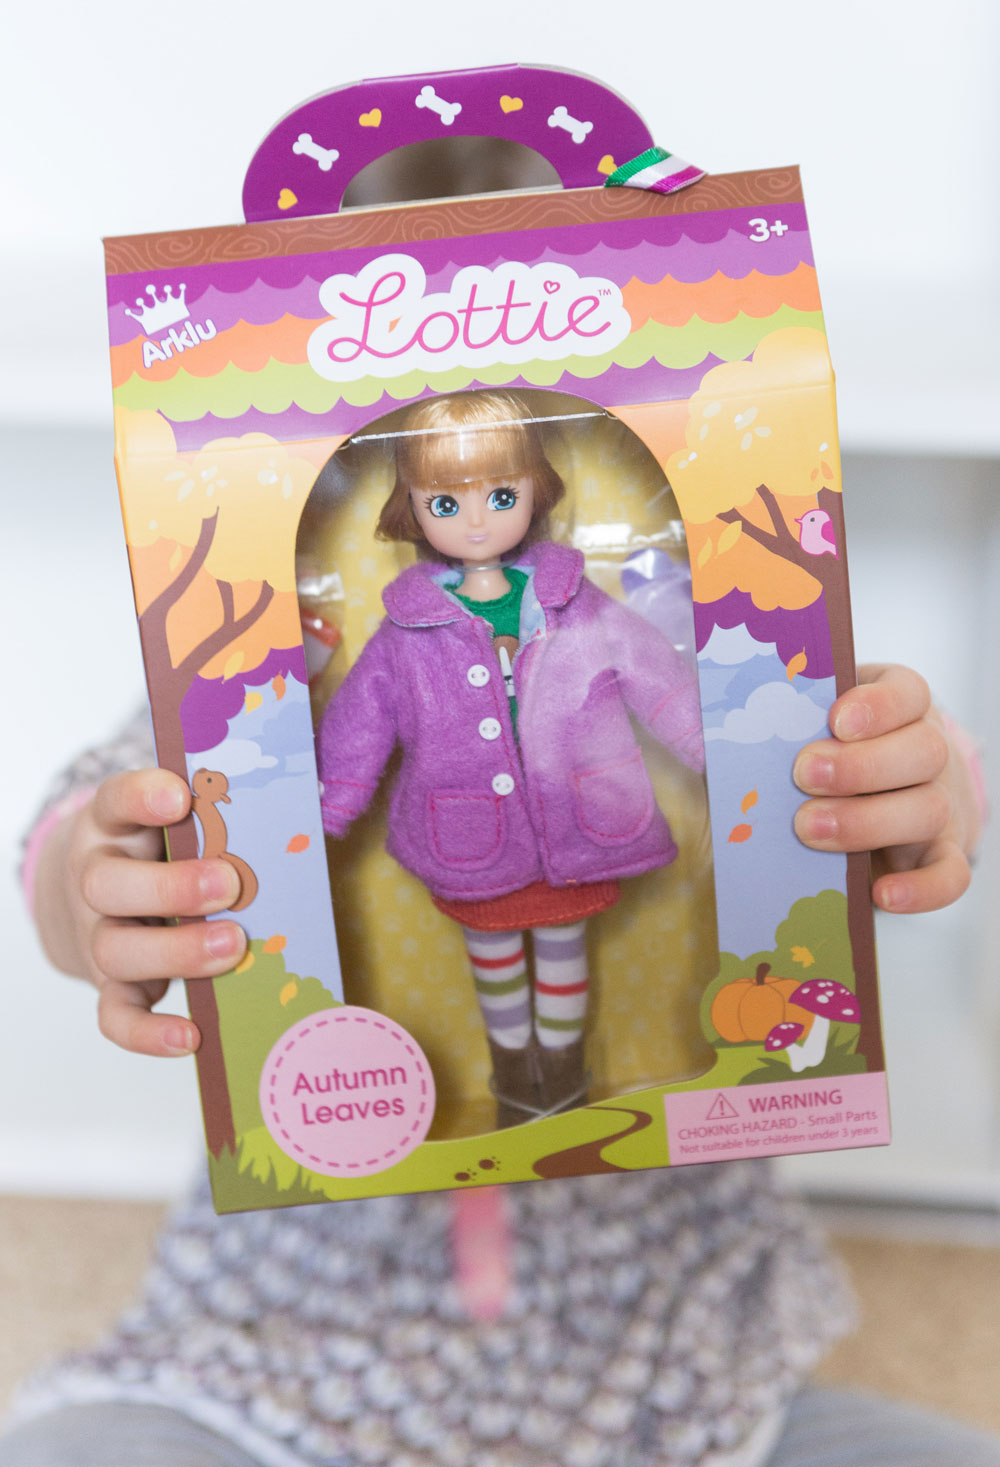 Whimsical Lottie Dolls for imaginative play - Mommy Scene